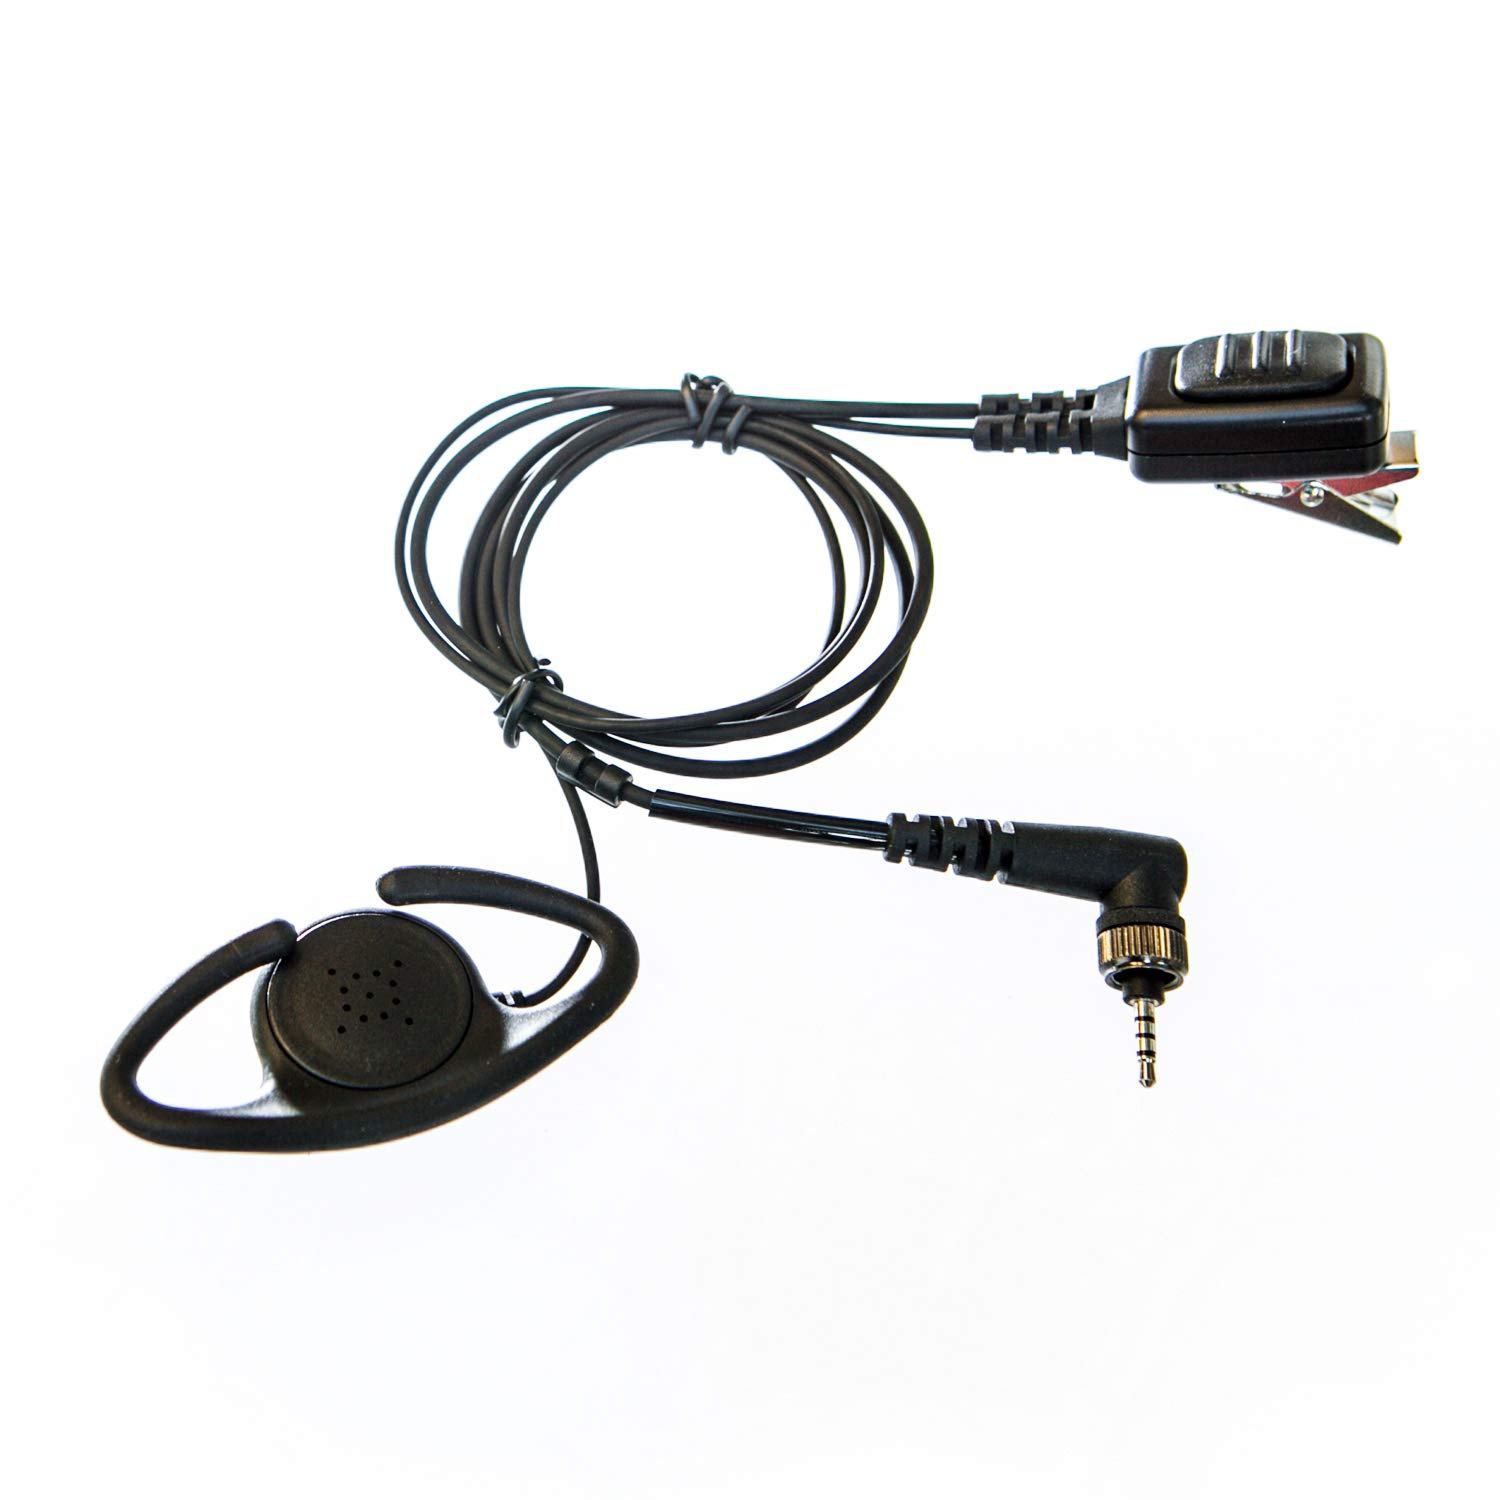 Adjustable D shape Earpieces with mic for Entel radio (single pin & screw)